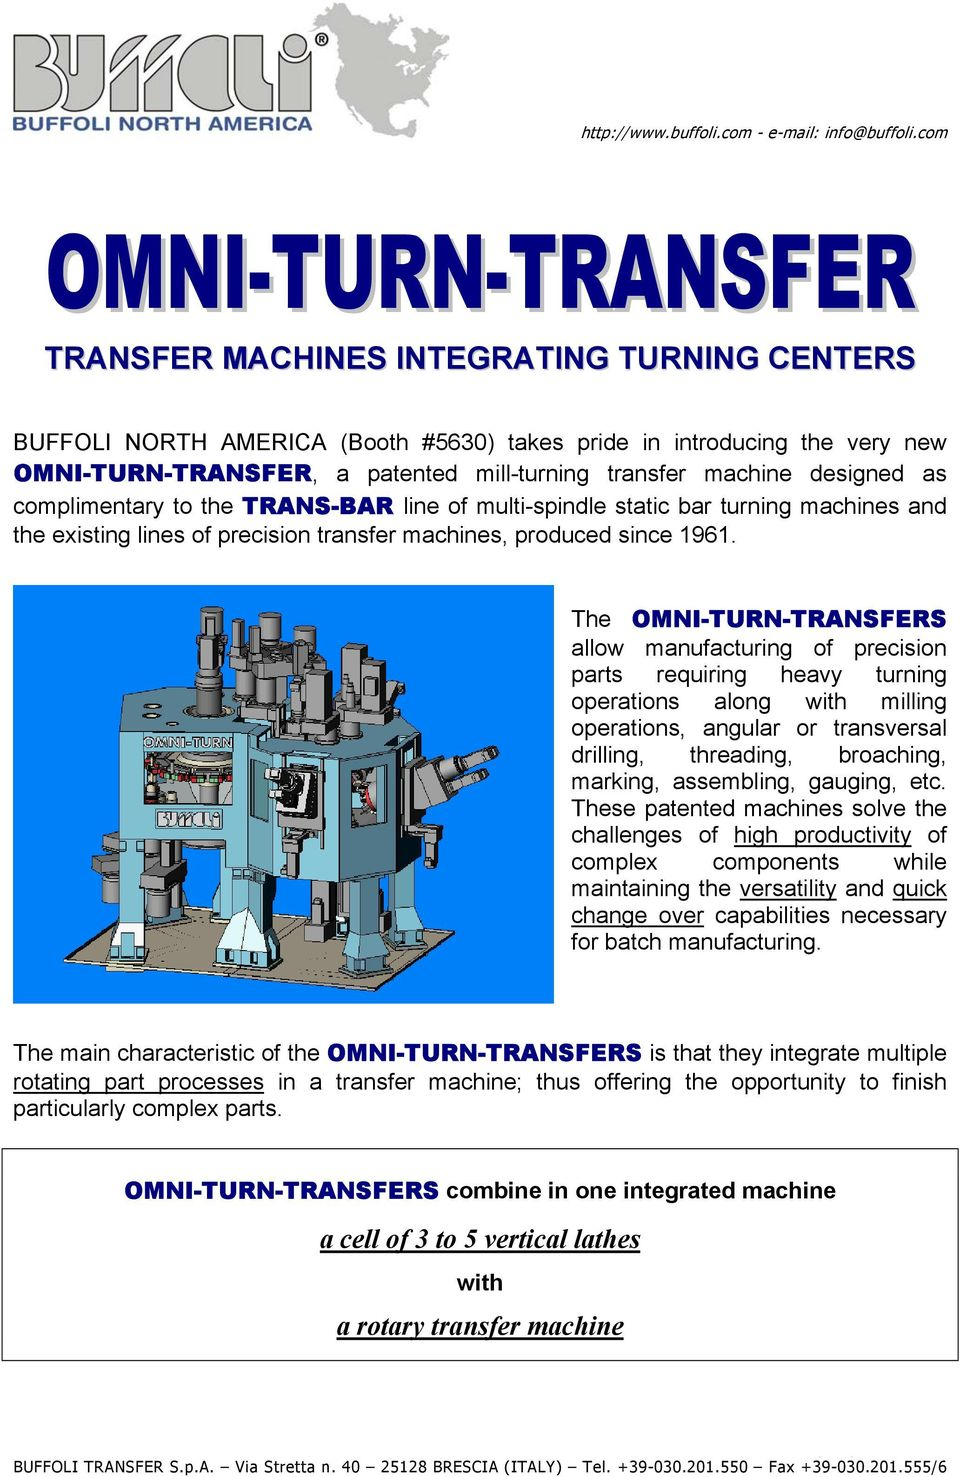 The OMNI-TURN-TRANSFERS allow manufacturing of precision parts requiring heavy turning operations along with milling operations, angular or transversal drilling, threading, broaching, marking,